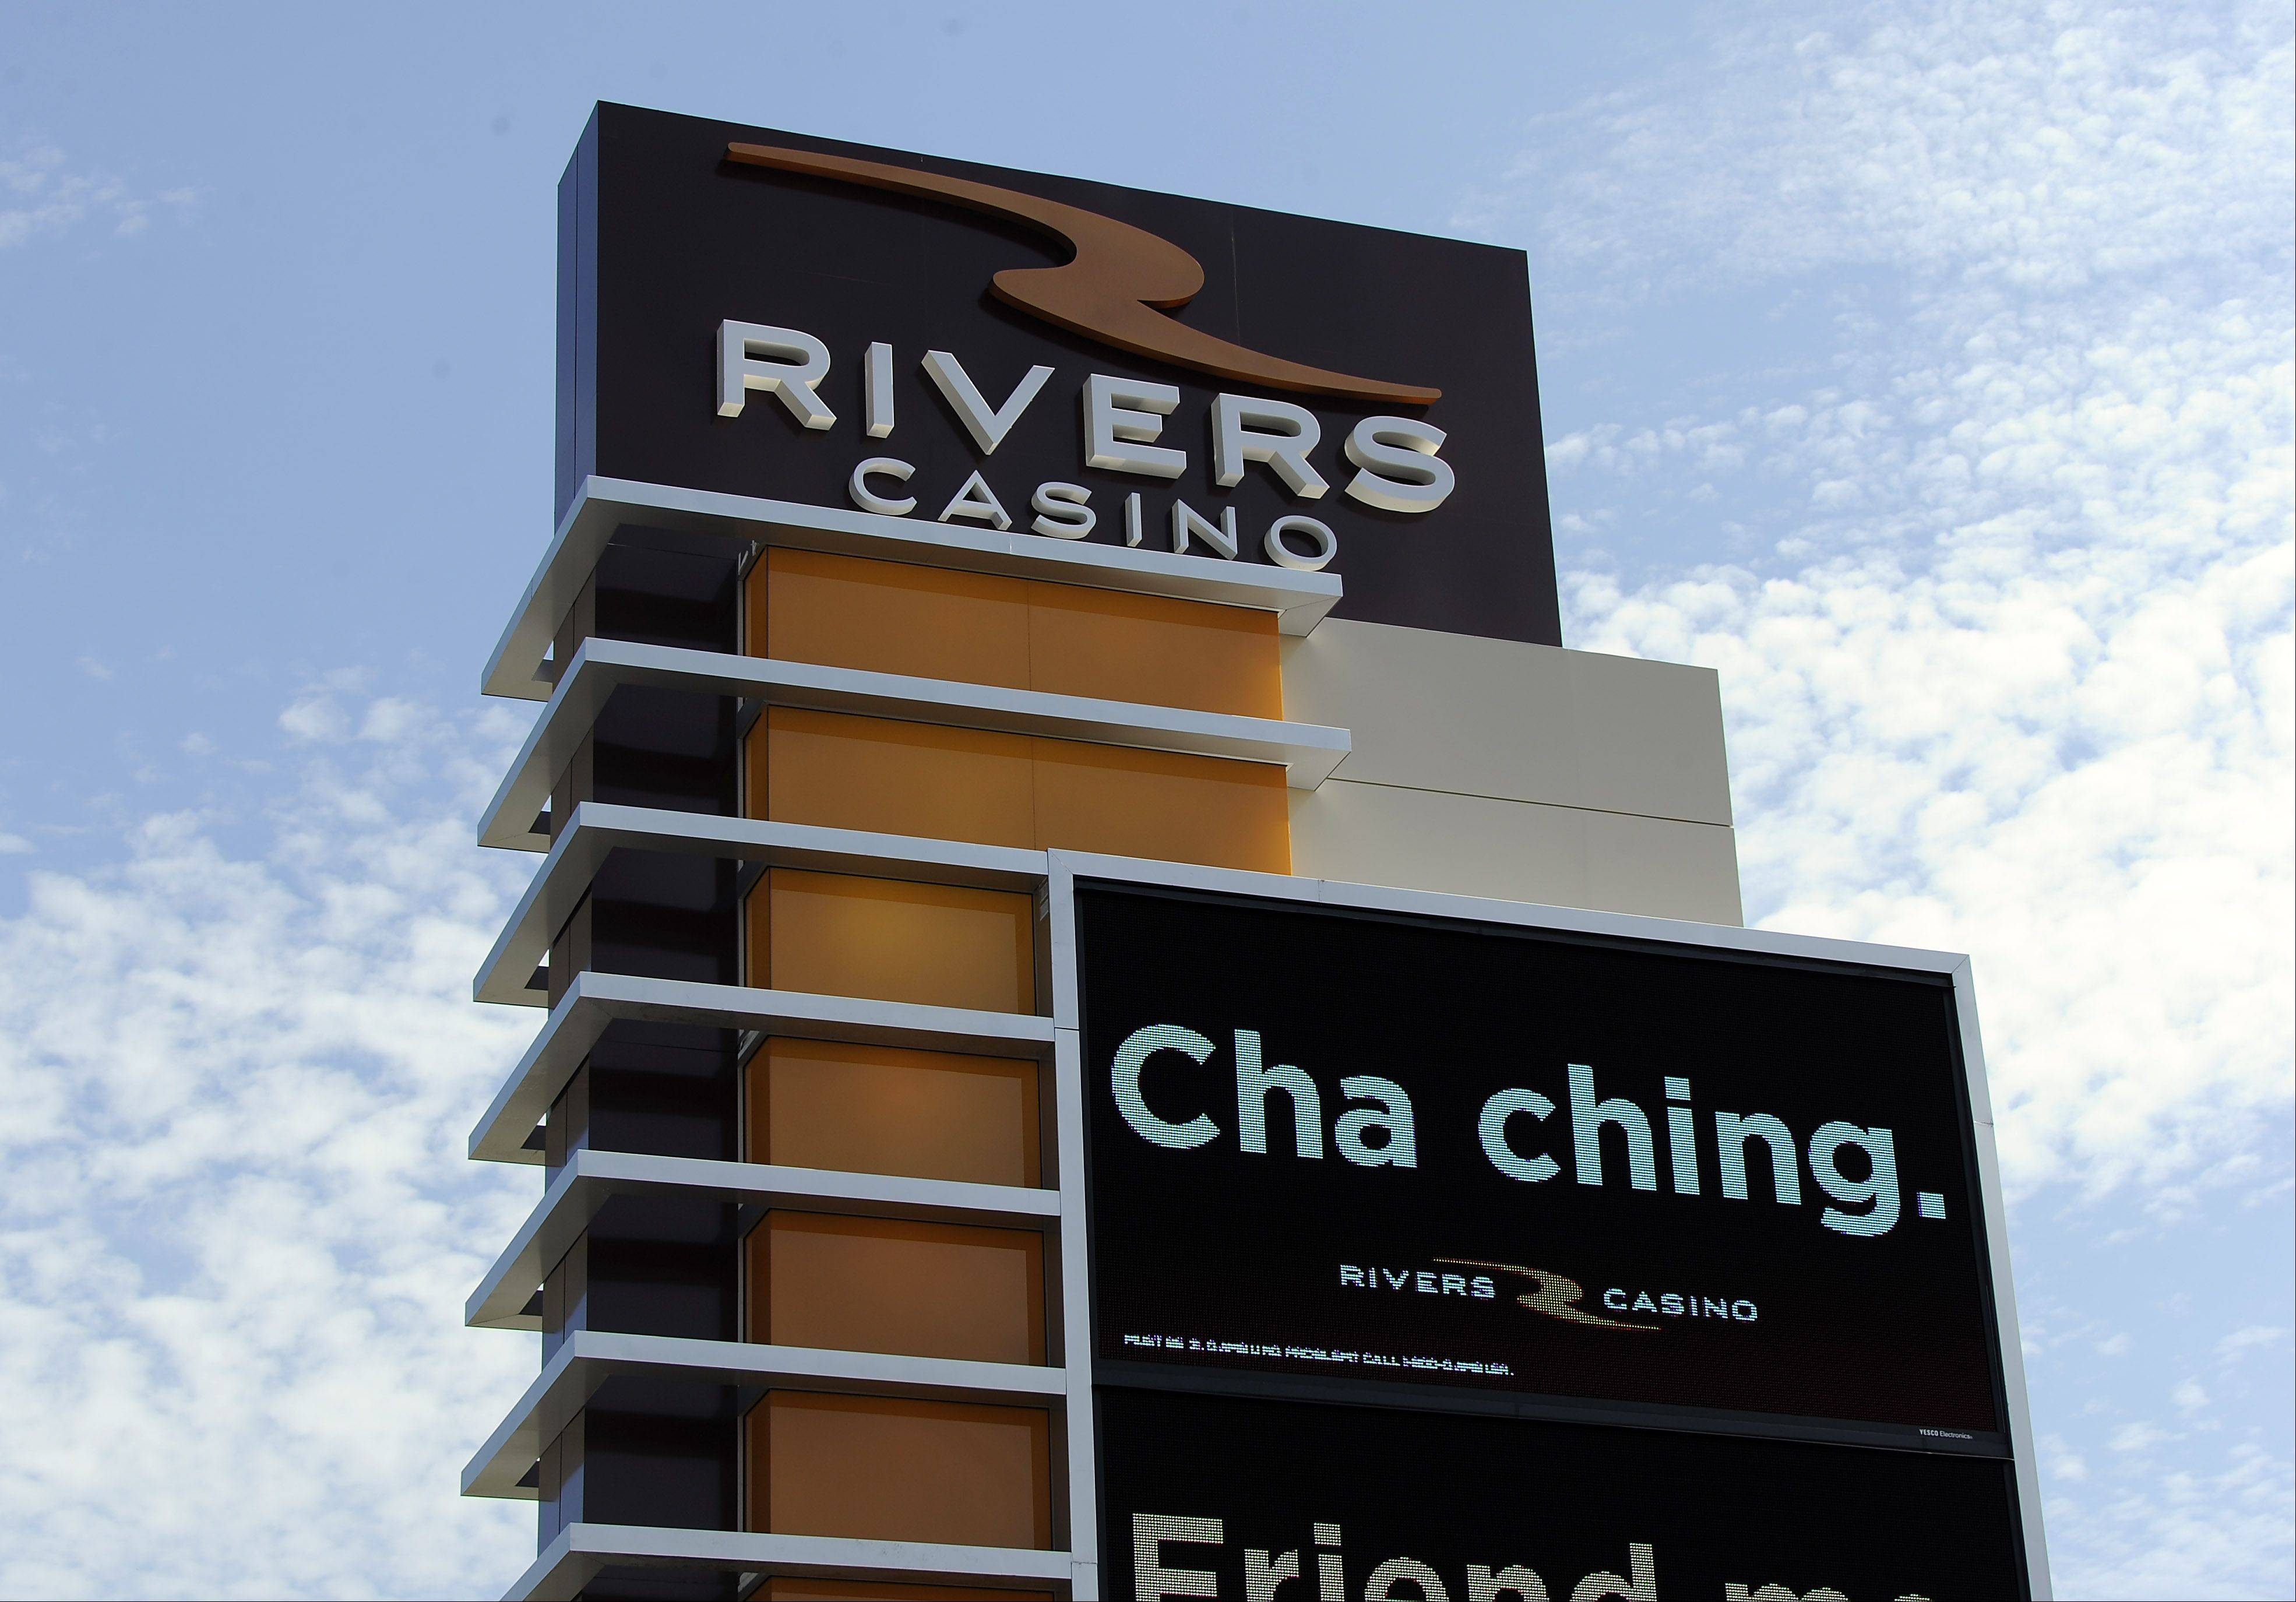 A small fire caused a slight interruption in the proceedings Sunday morning at Rivers Casino in Des Plaines. No one was injured in the fire, which occurred near a fireplace, and its cause appears accidental, authorities said.